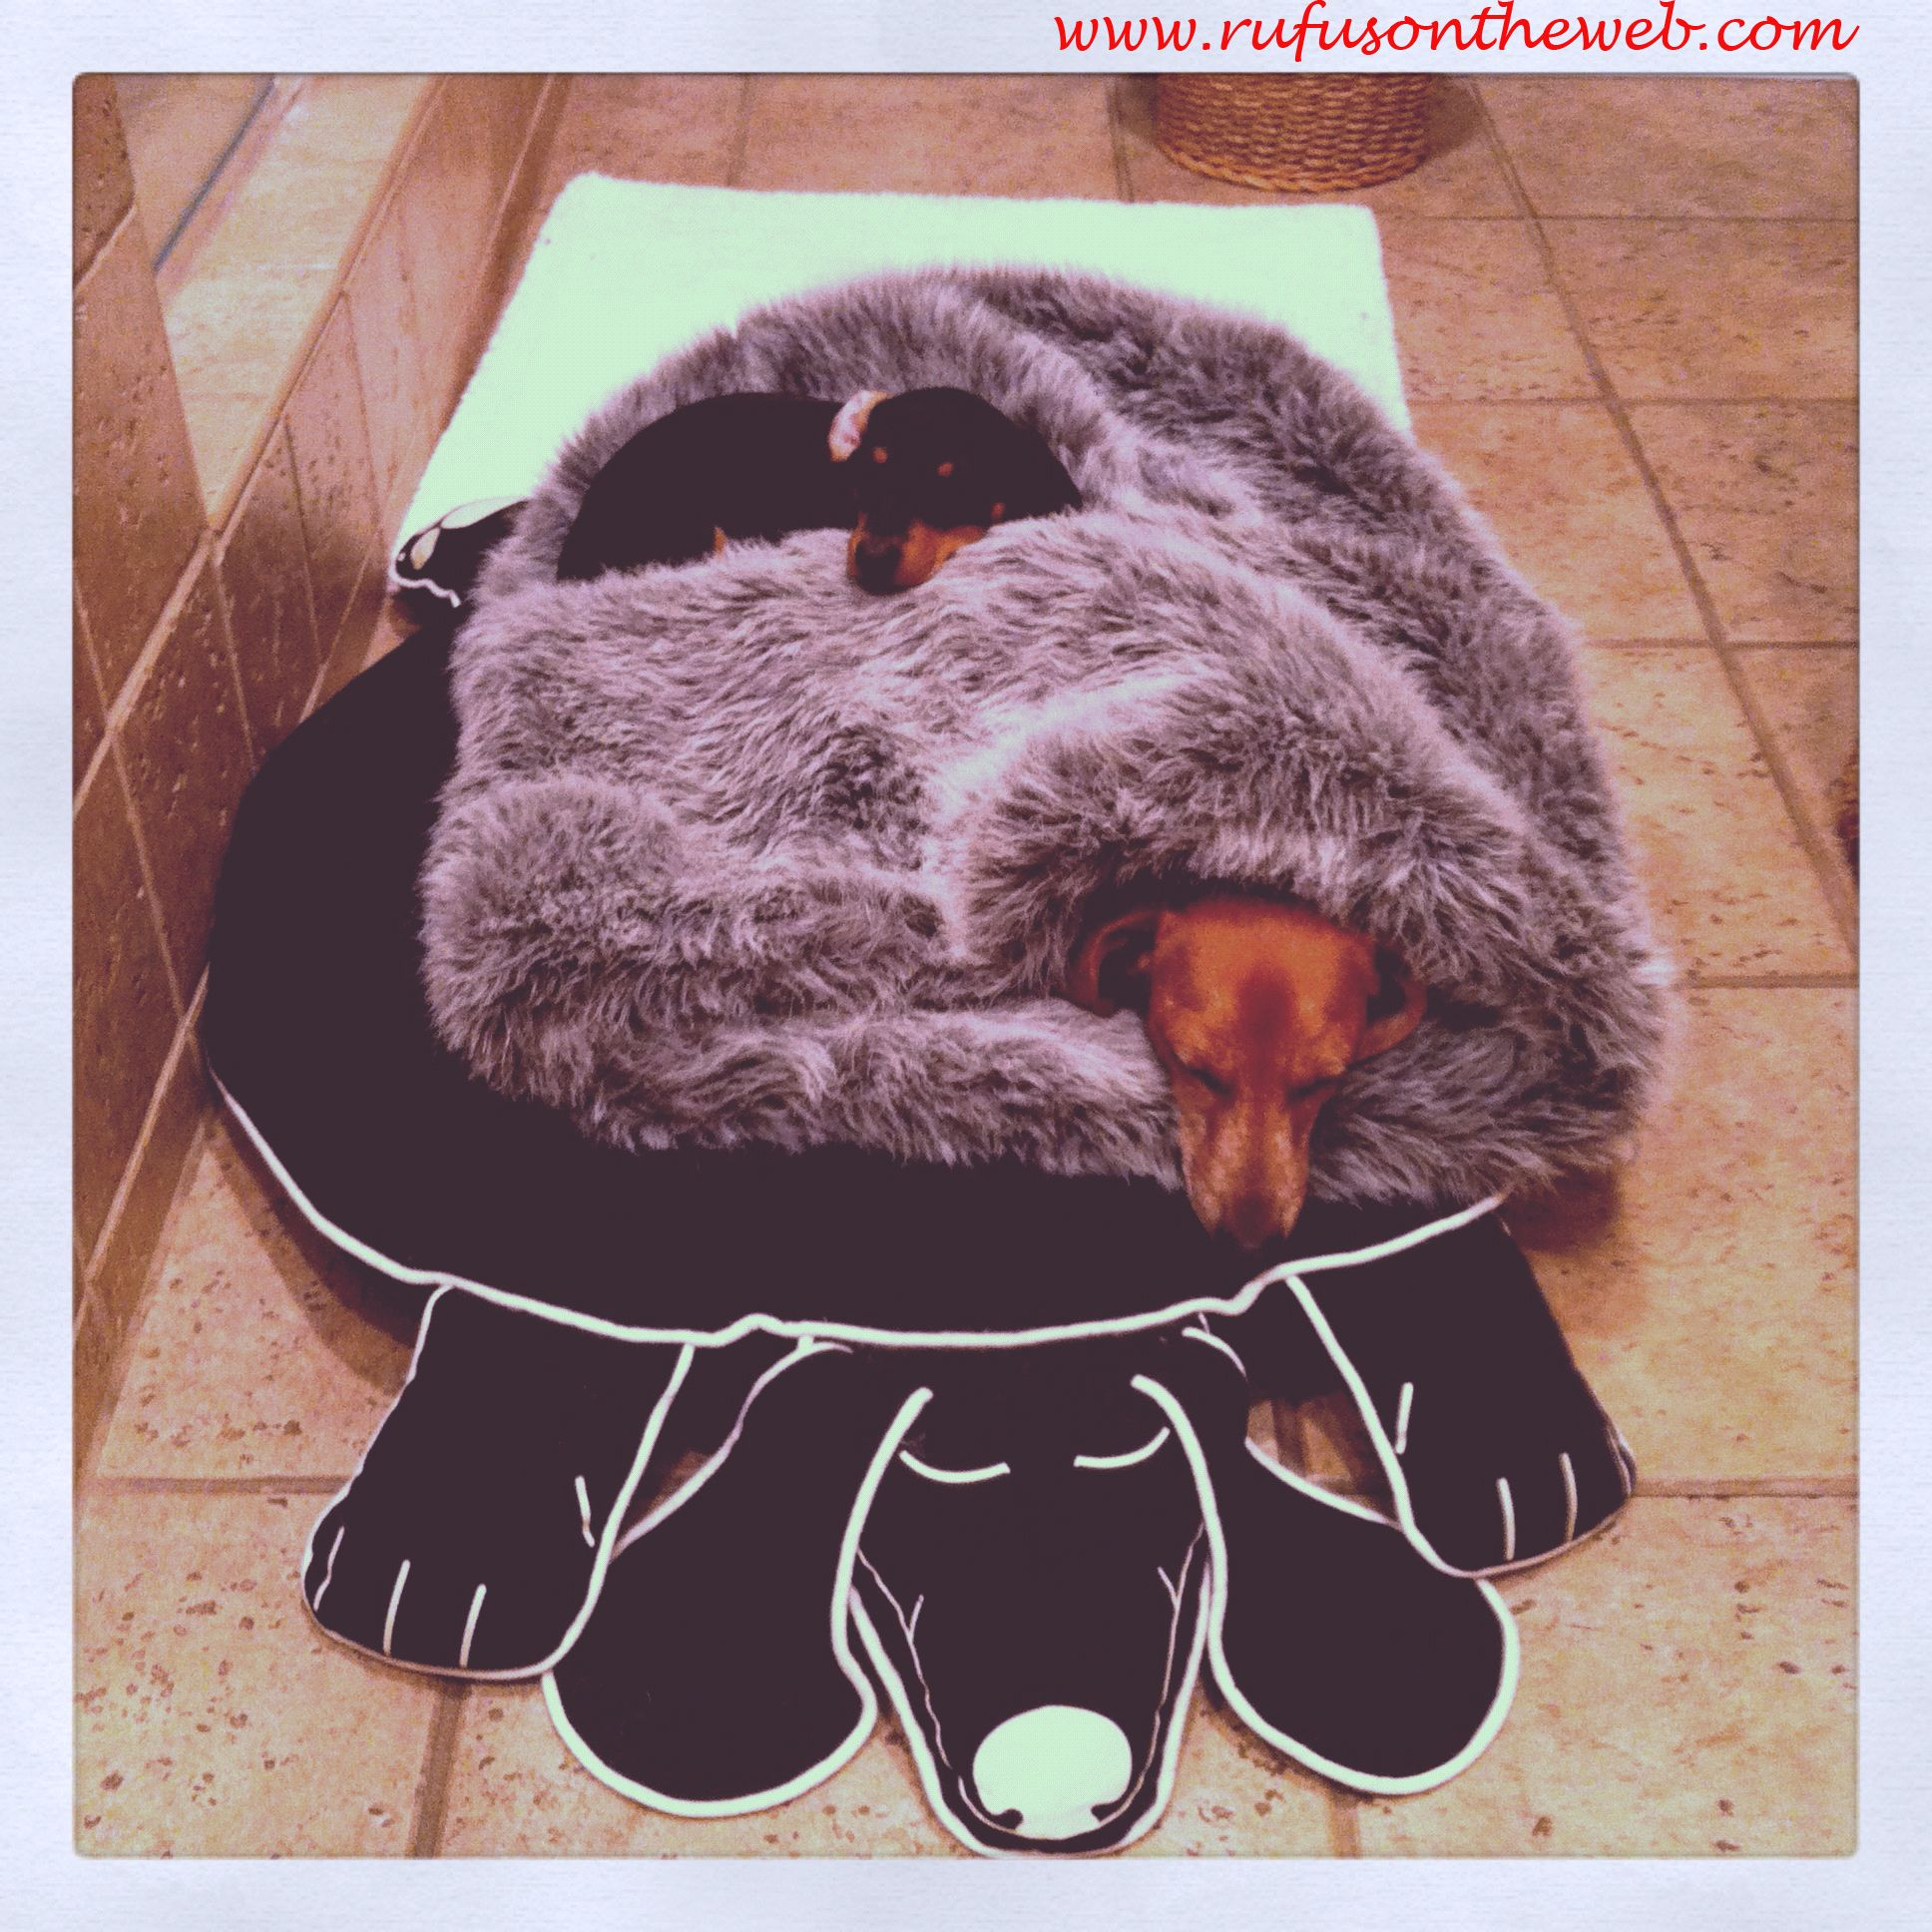 Emily & Rufus sleep. Cute. To see more visit http://wp.me/27Fw1 #dachshund #Rufus #doxies